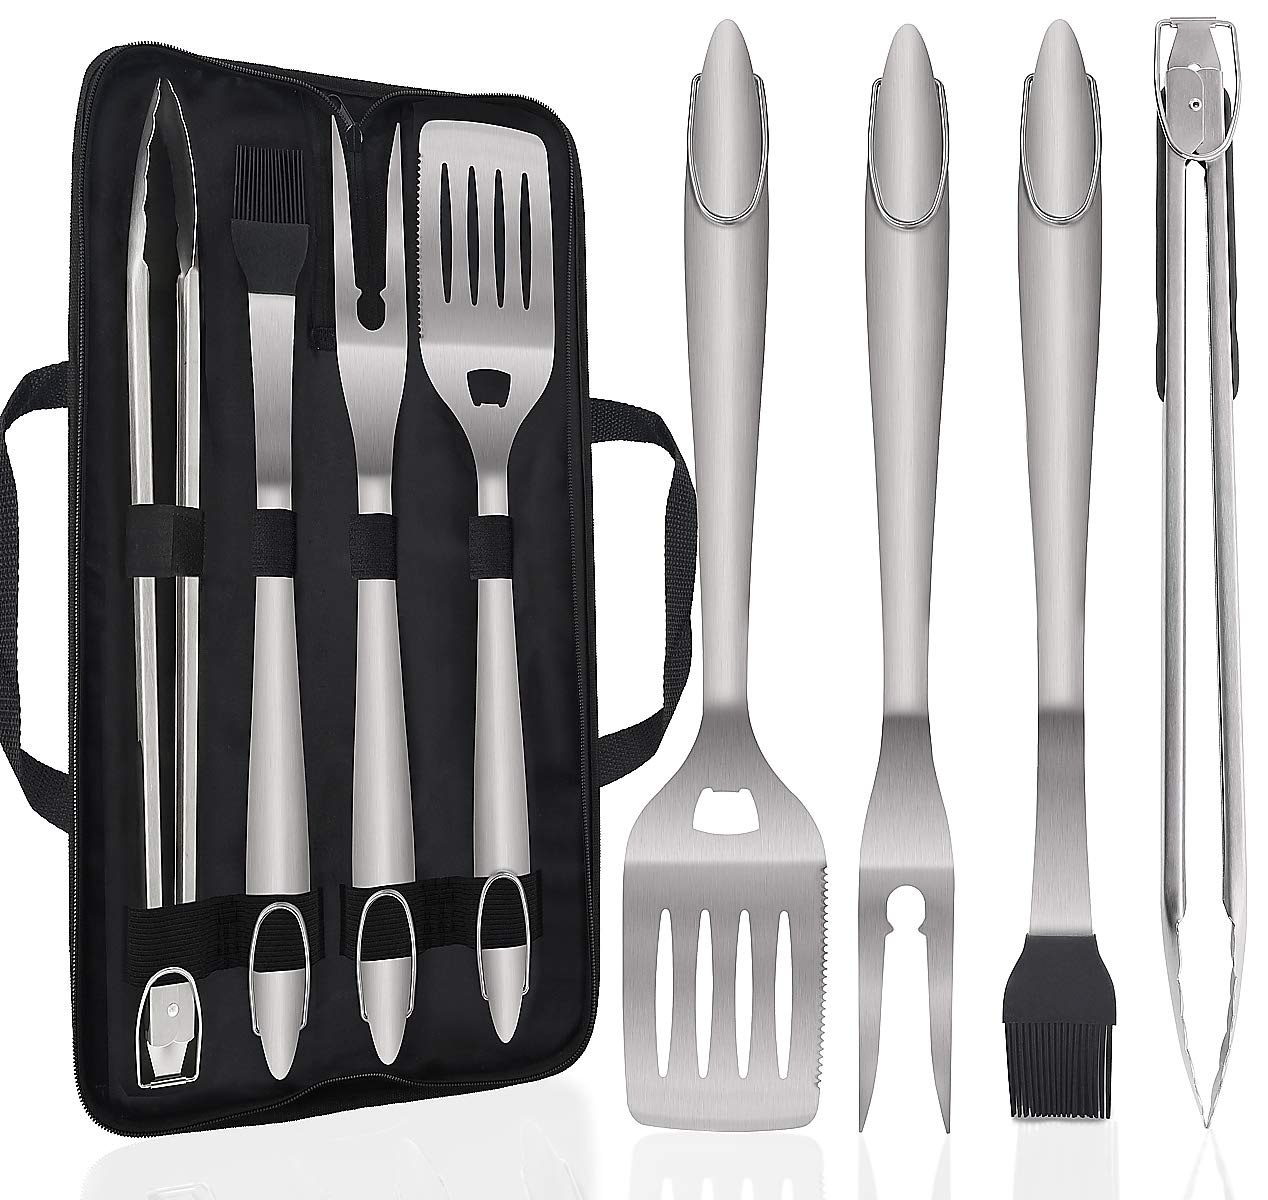 POLIGO 5PCS Barbecue Grilling Accessories Set with Bag – Extra Thick Stainless Steel Spatula, Fork, Tongs Basting Brush – Gift Box Package Ideal Christmas Birthday Gifts Set for Dad Men Presents